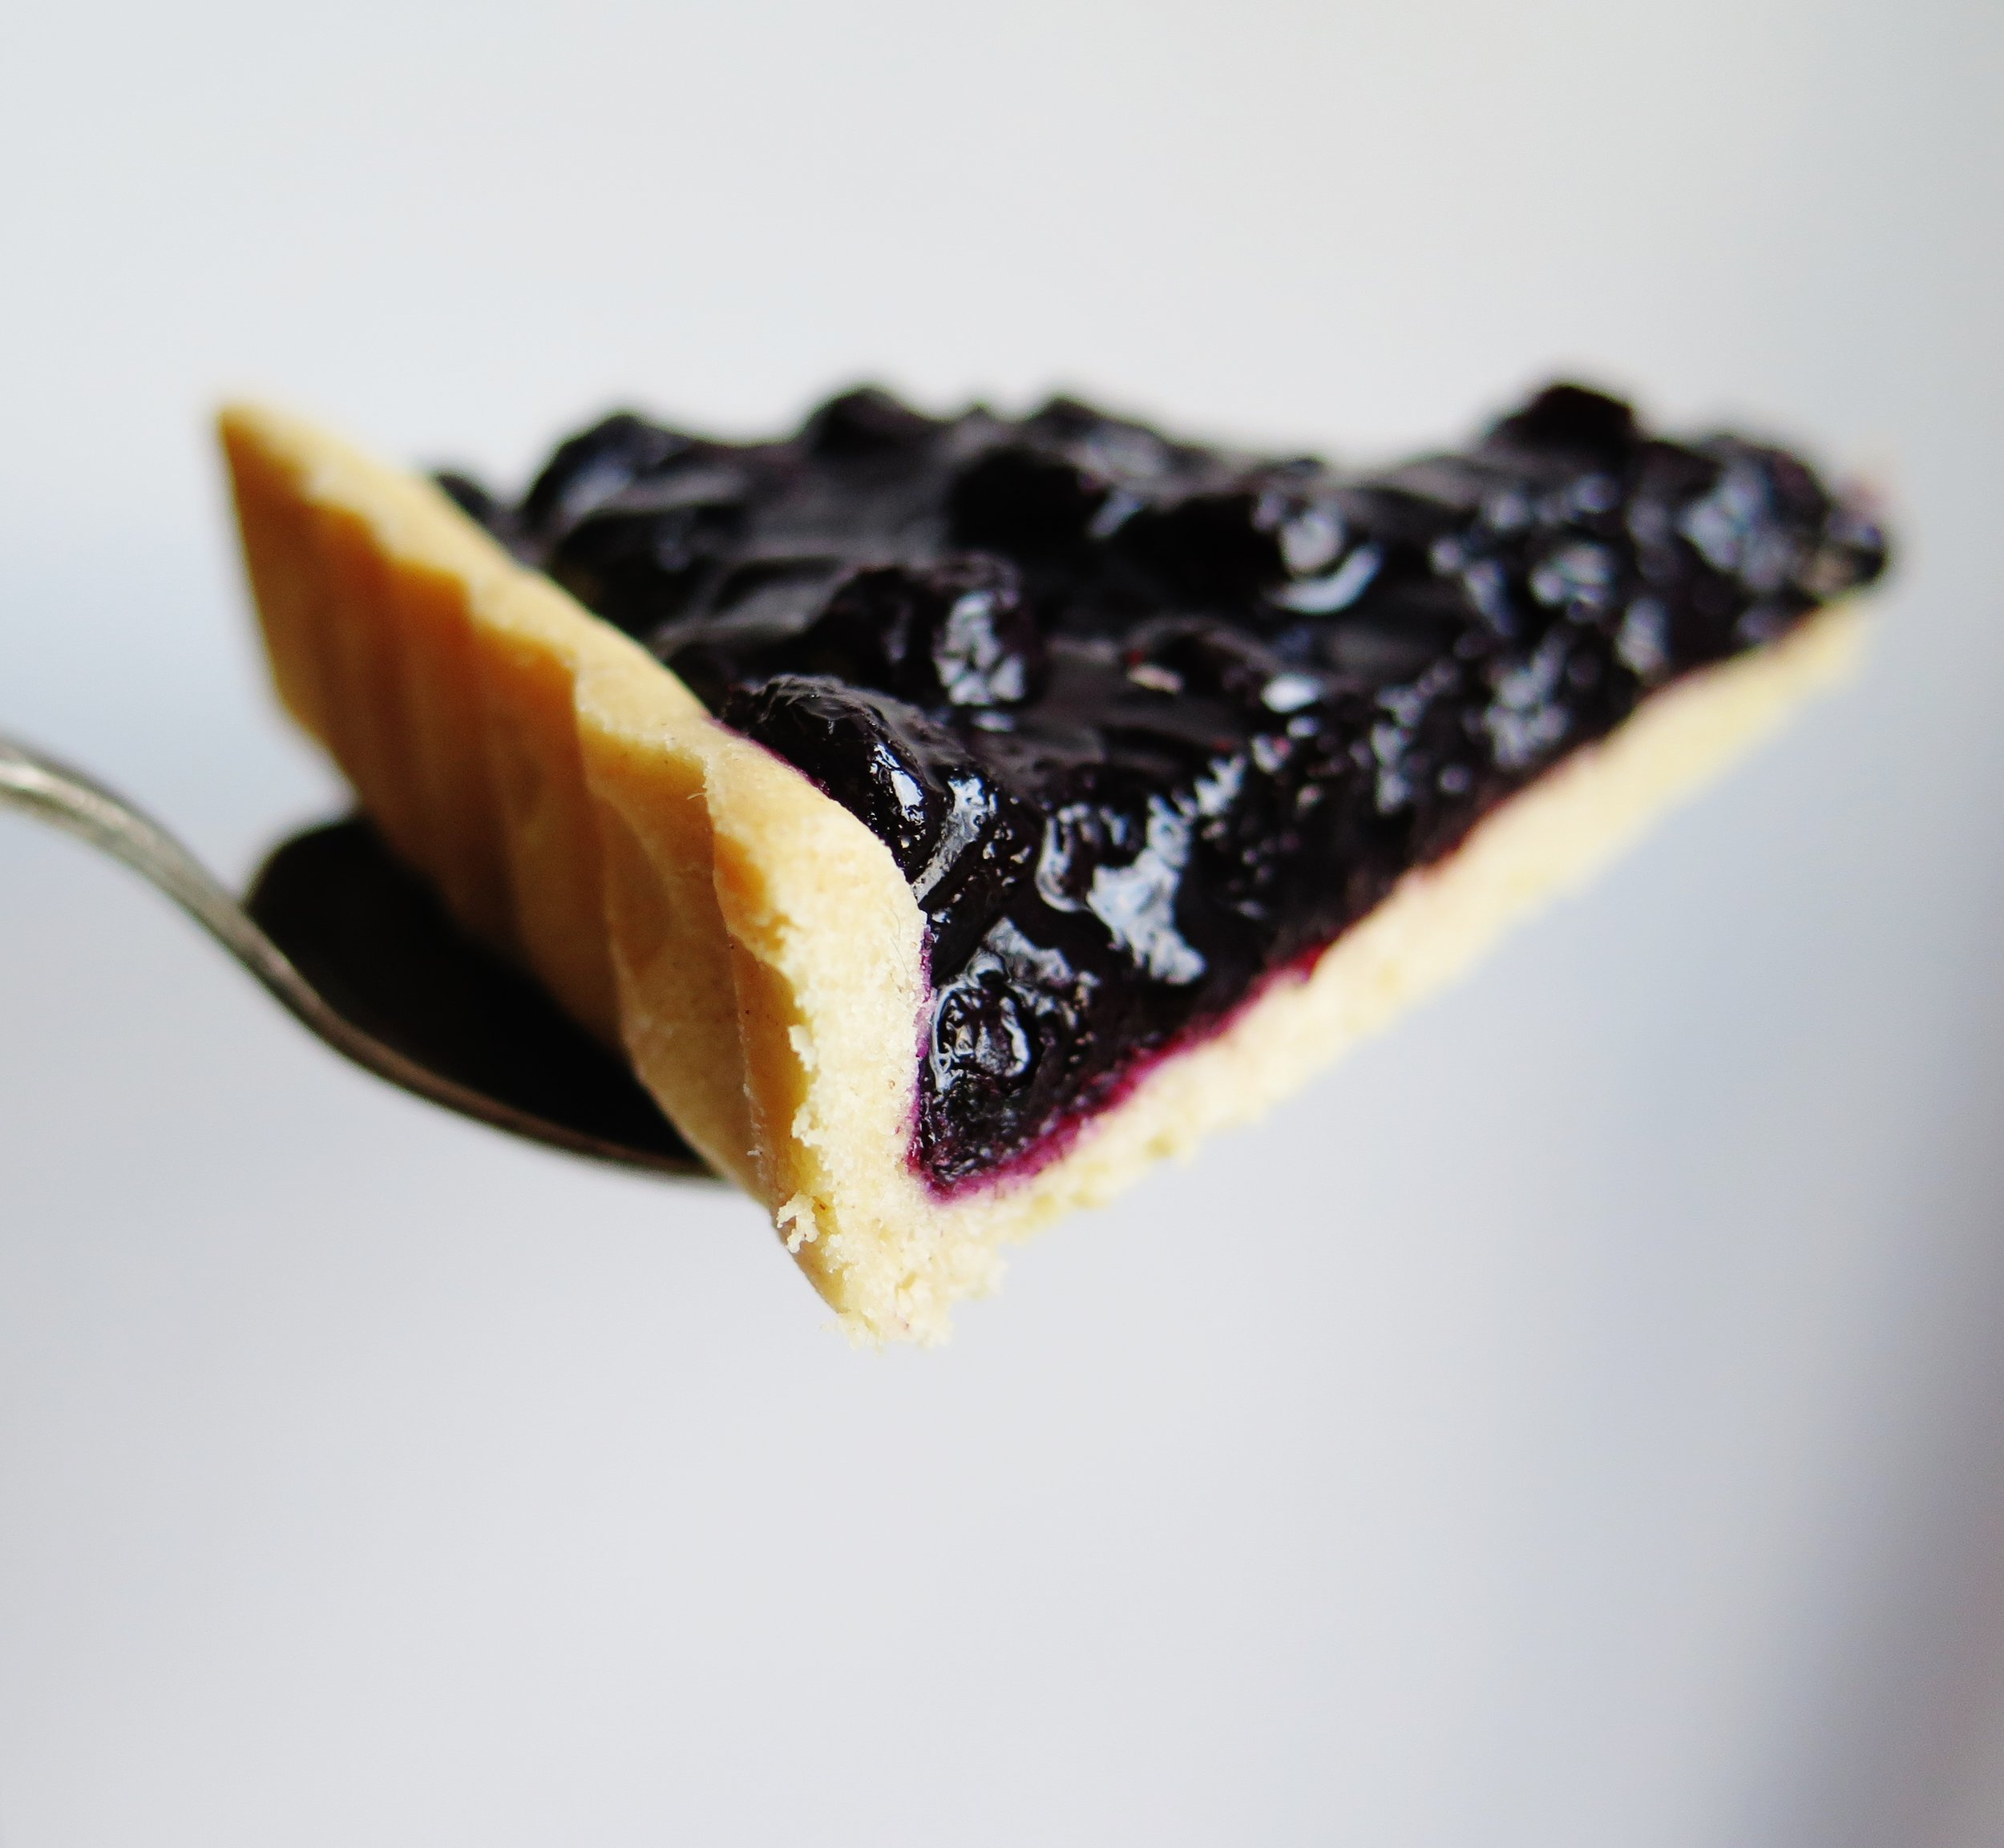 Spiced Blueberry Tart